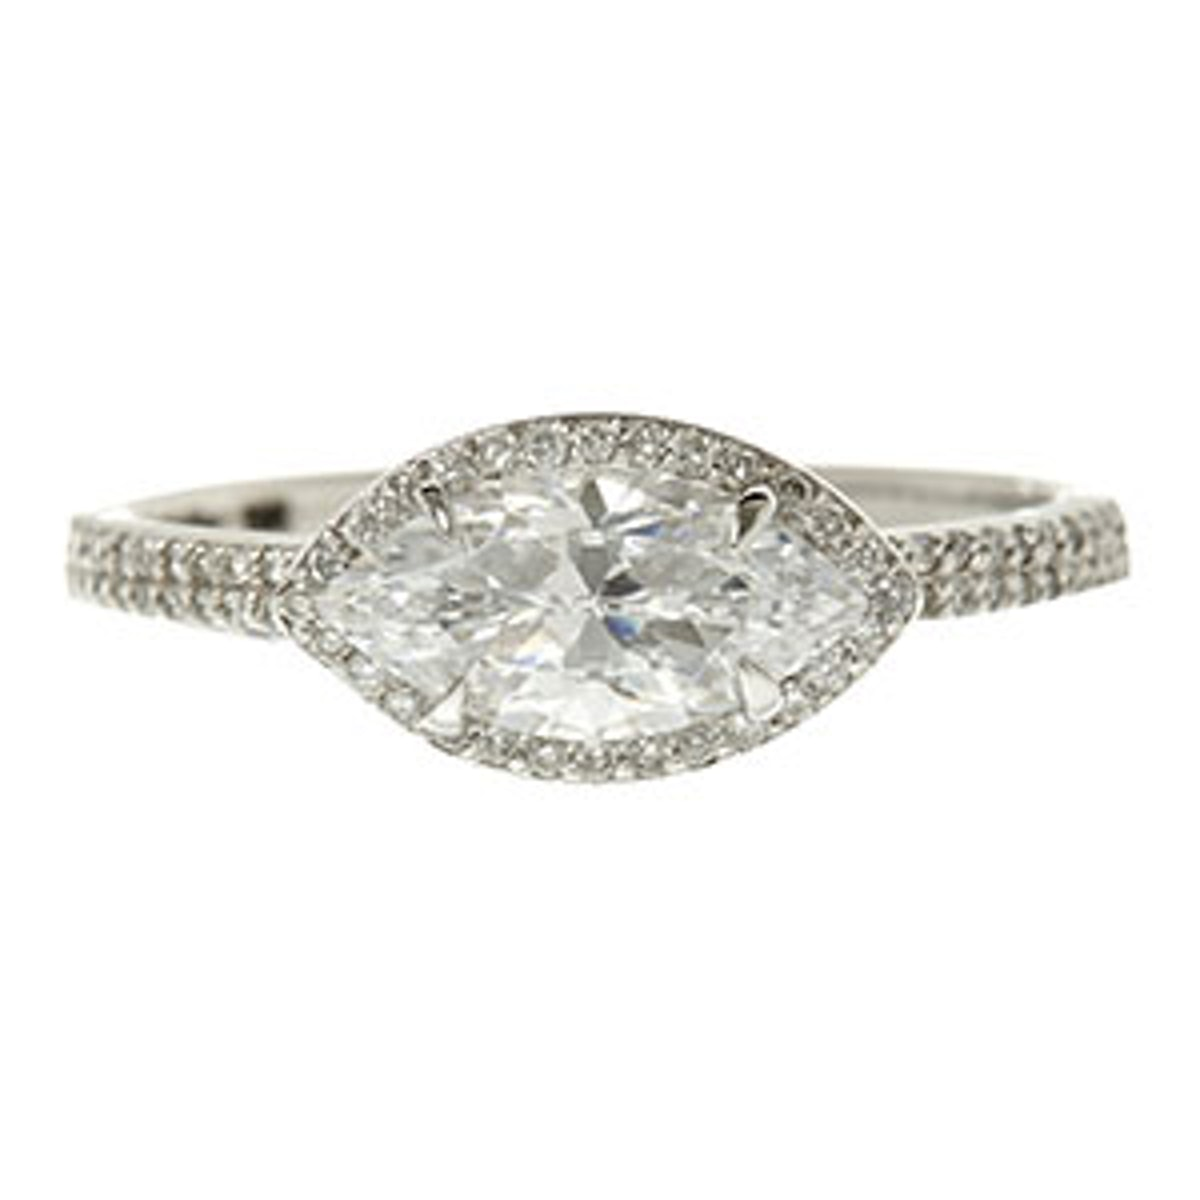 The Elodie Ring Marquie Cut Diamond Double Pavé Band